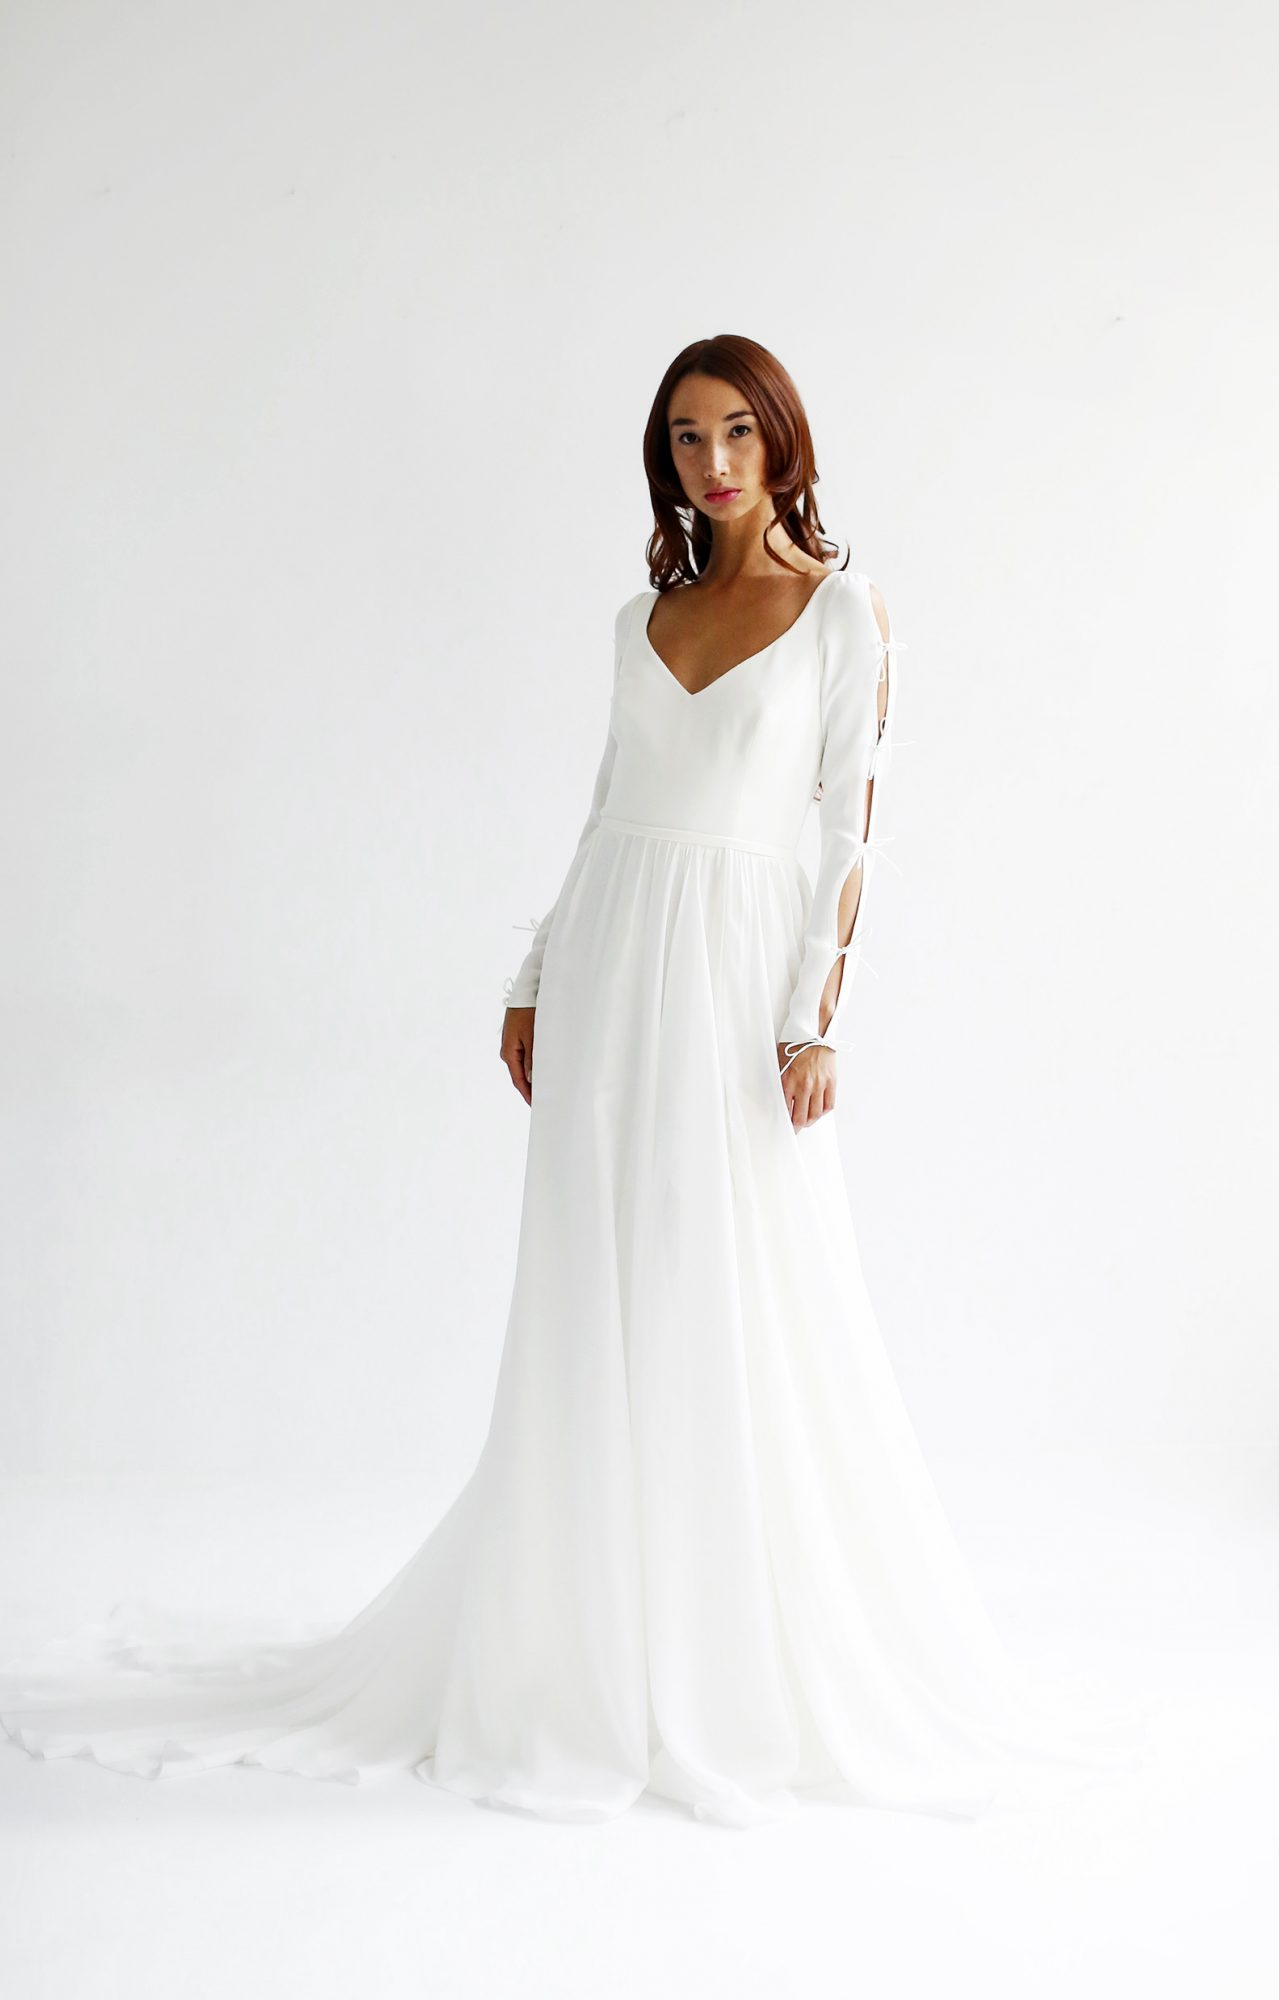 leanne marshall wedding dress spring 2019 long sleeves cut outs